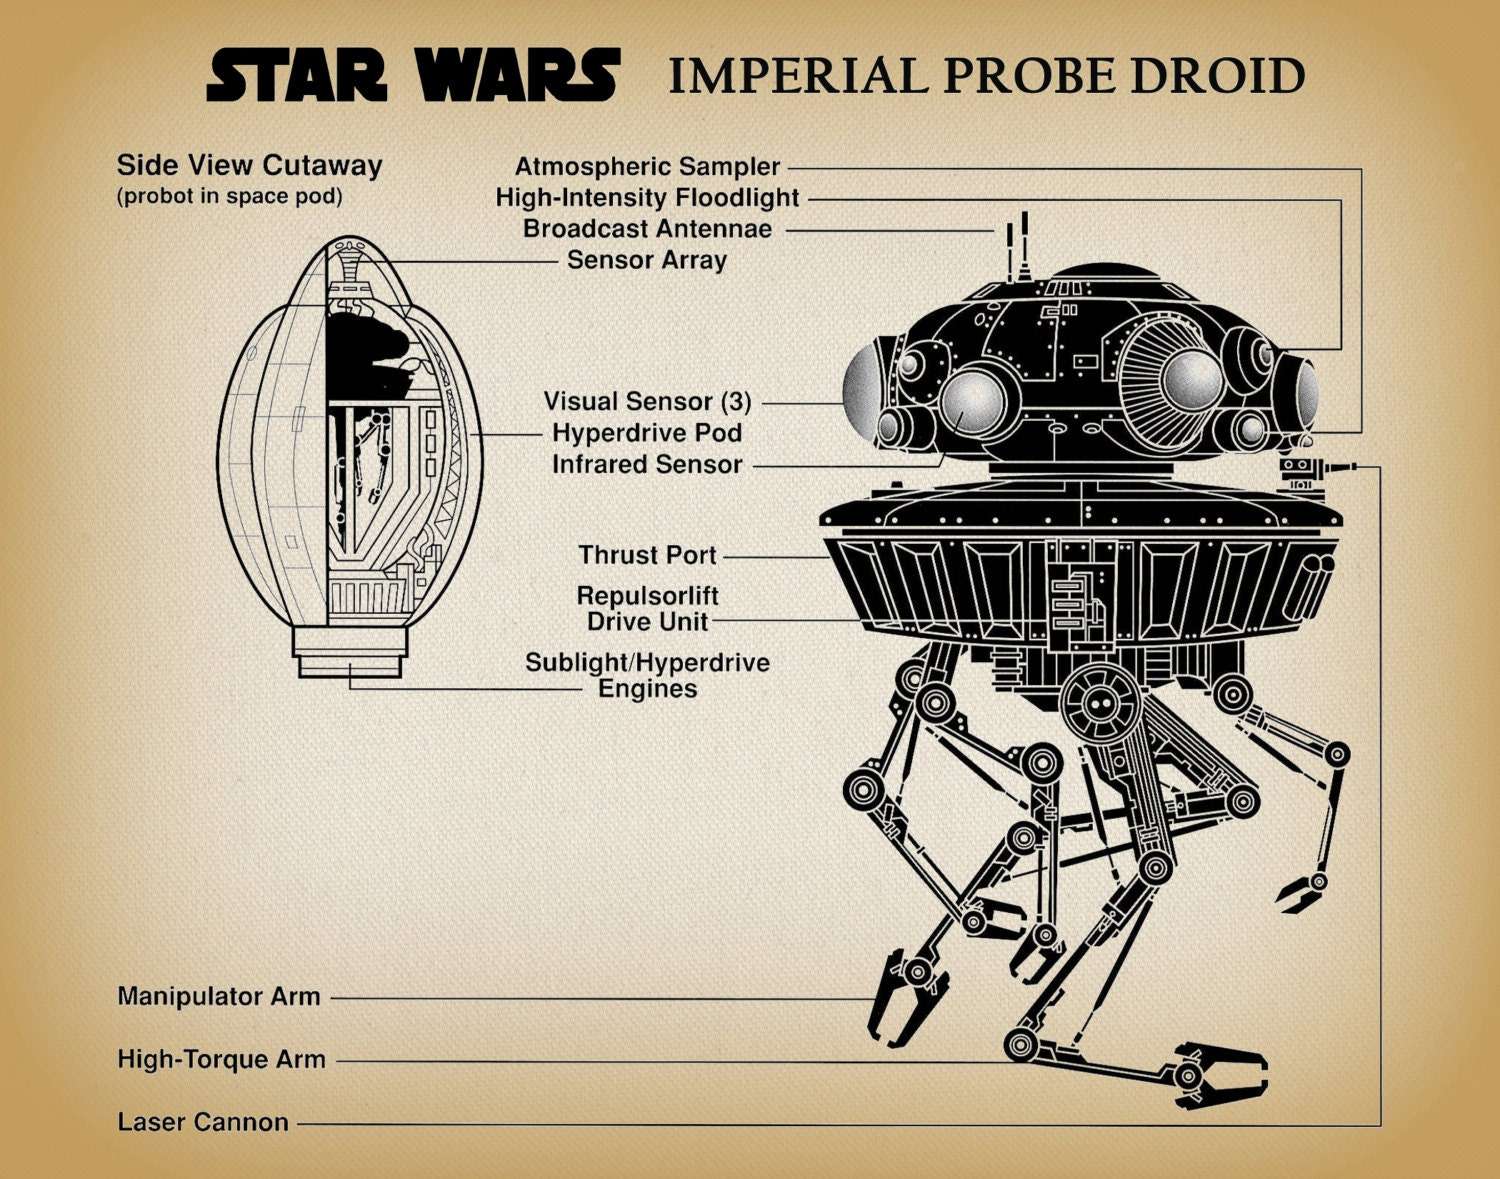 STAR WARS Imperial Probe Droid Blueprint - Schematic Art Print Wall ...